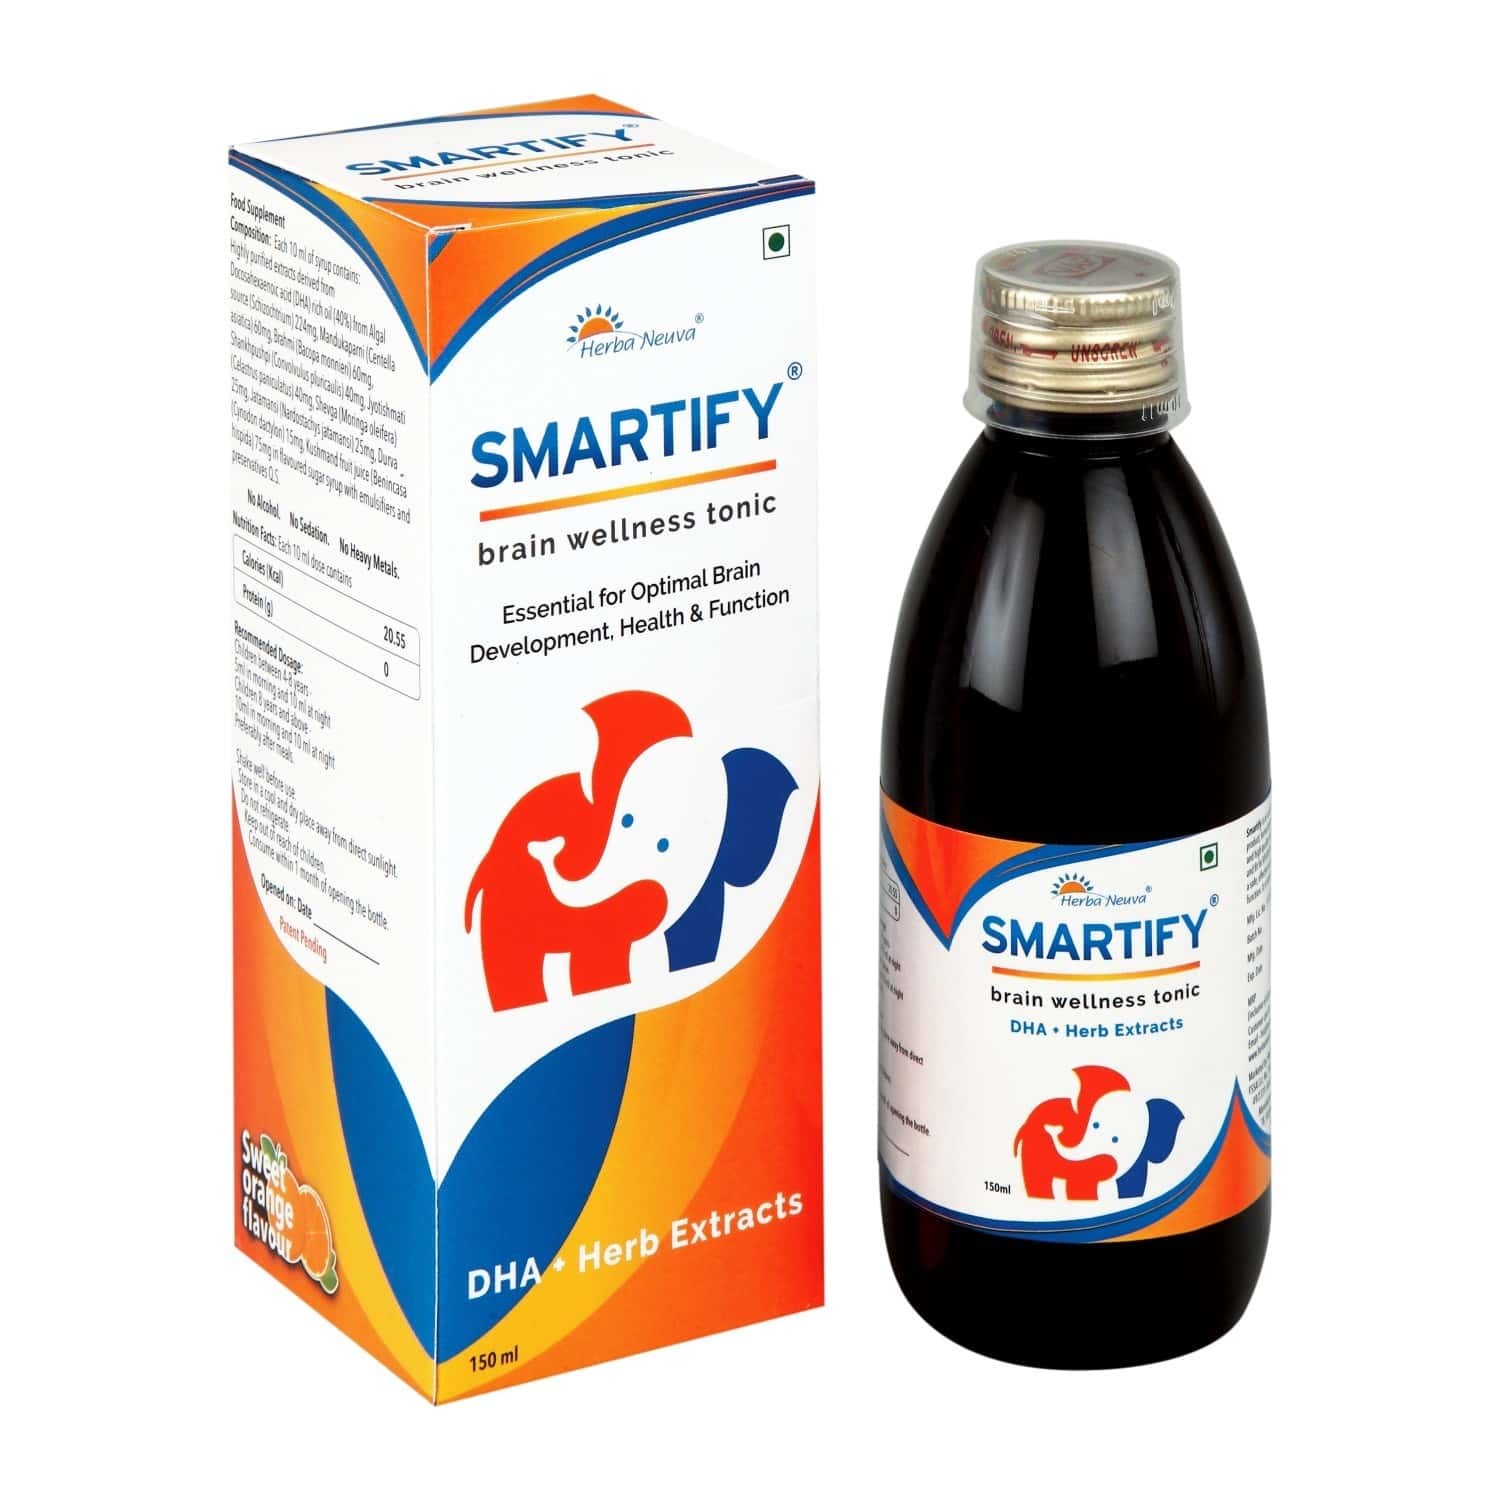 Herba Neuva Smartify Syrup- Veg Omega-3 (dha) -for Brain Health, Memory,&concentration - 1x150ml